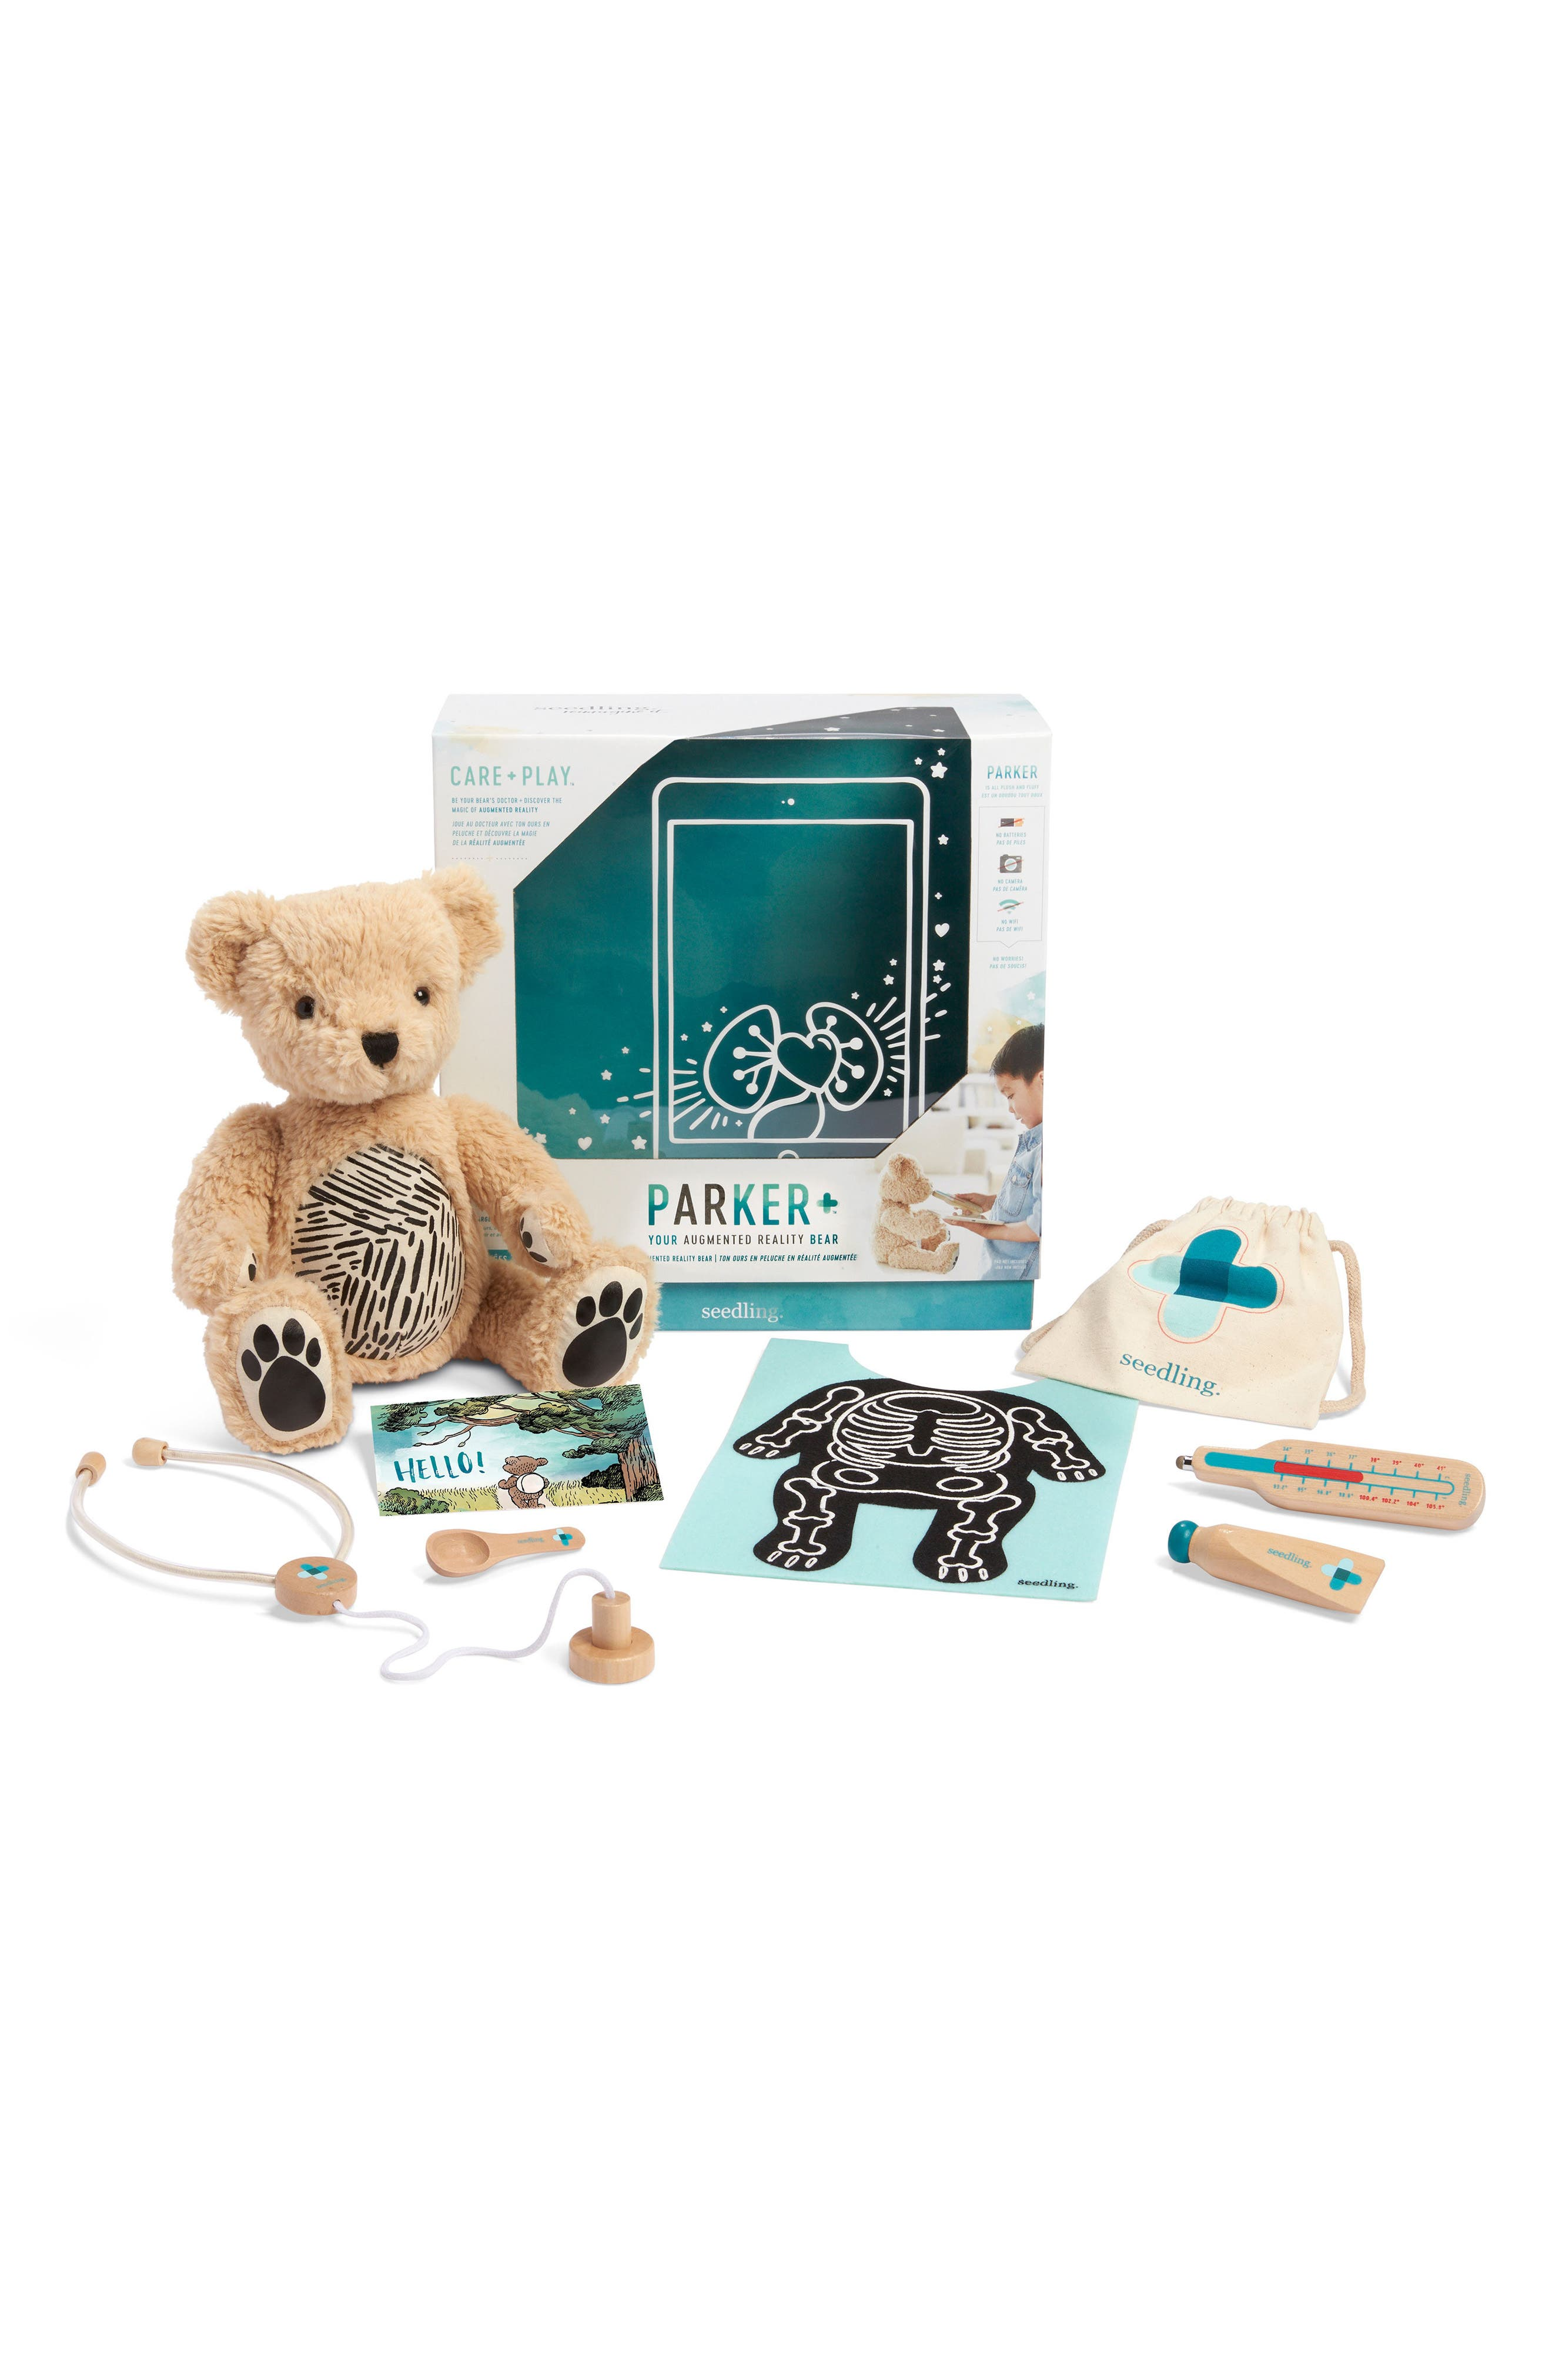 seedling Parker: Your Augmented Reality Interactive Stuffed Animal